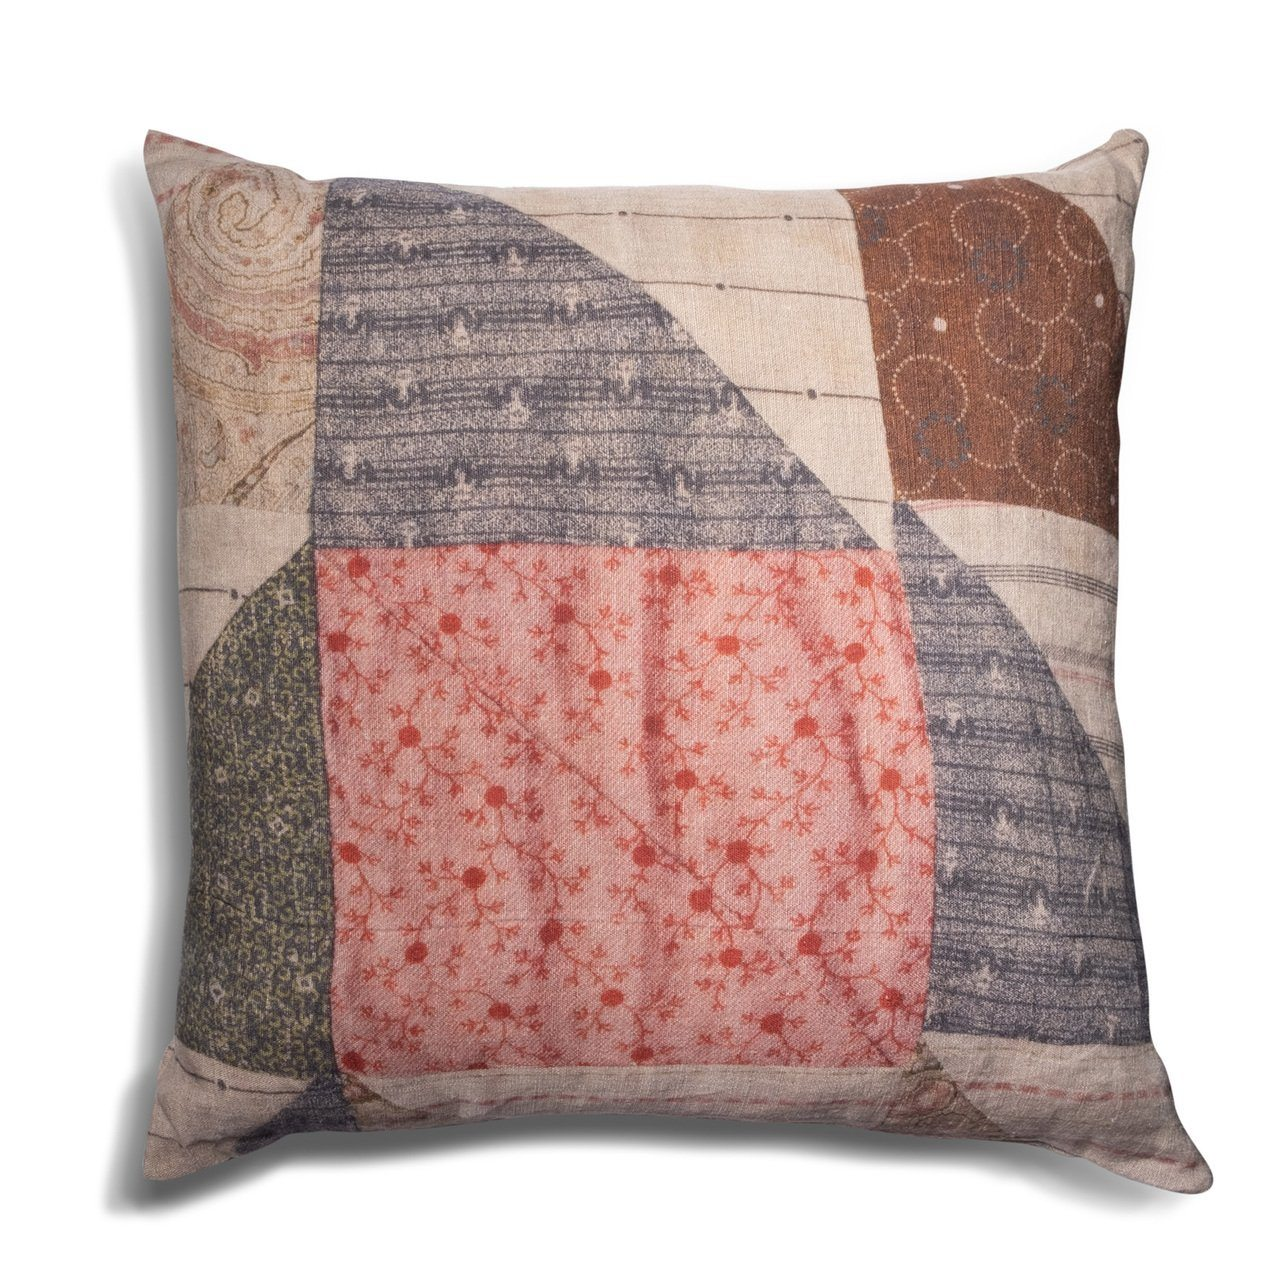 Siren Song Illinoise Linen Cushion